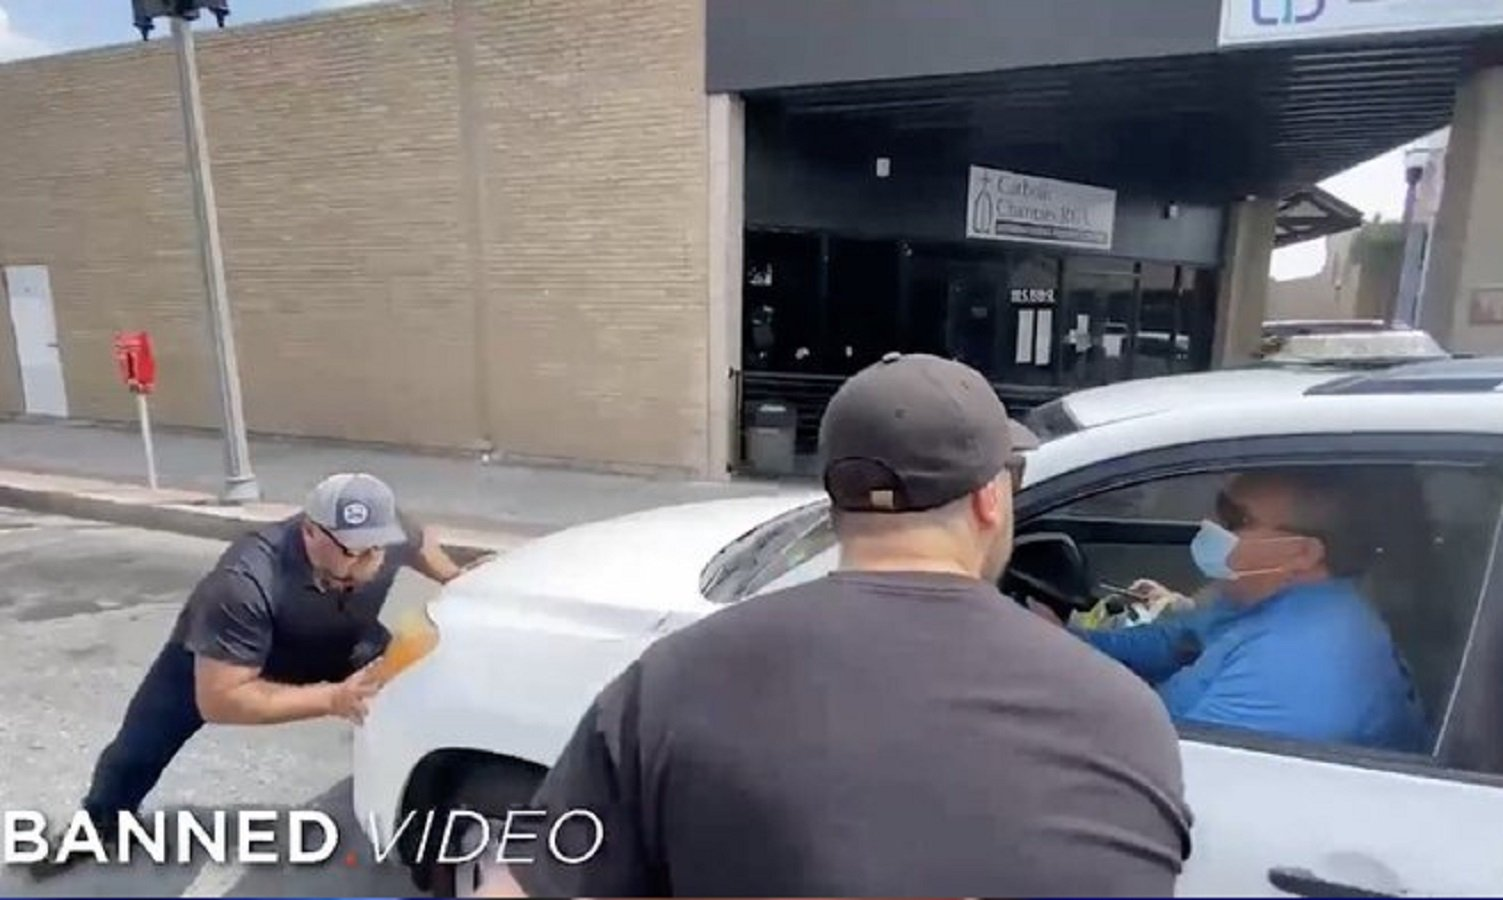 WATCH: Alex Jones Physically Stops Vehicle After Witnessing Migrant Children Being Stuffed in the Luggage Compartment